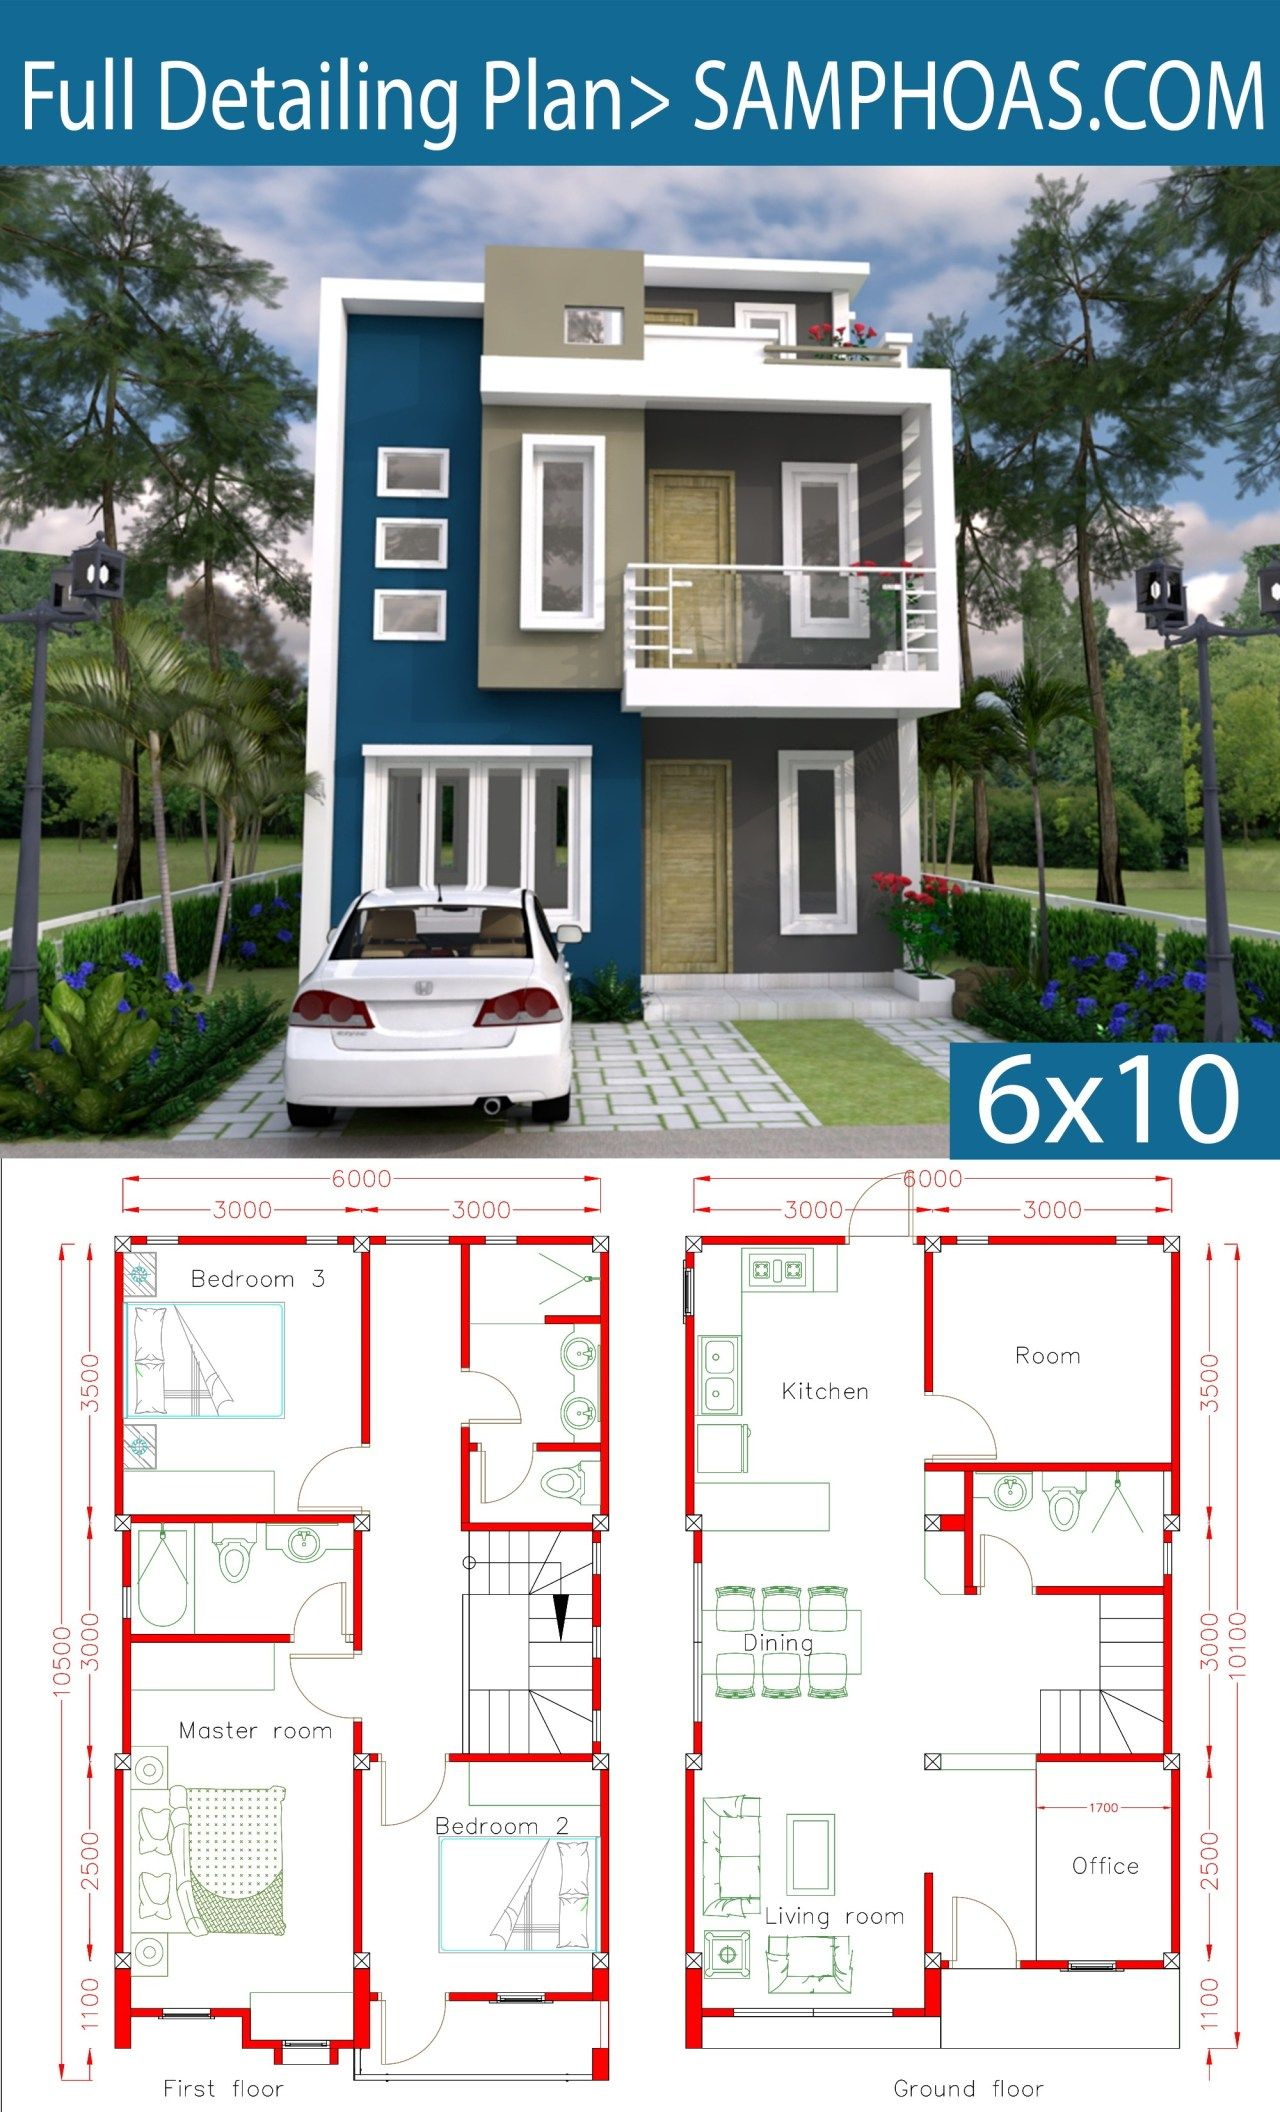 Sketchup Home Design Plan 6x10m With 4 Rooms Small House Design